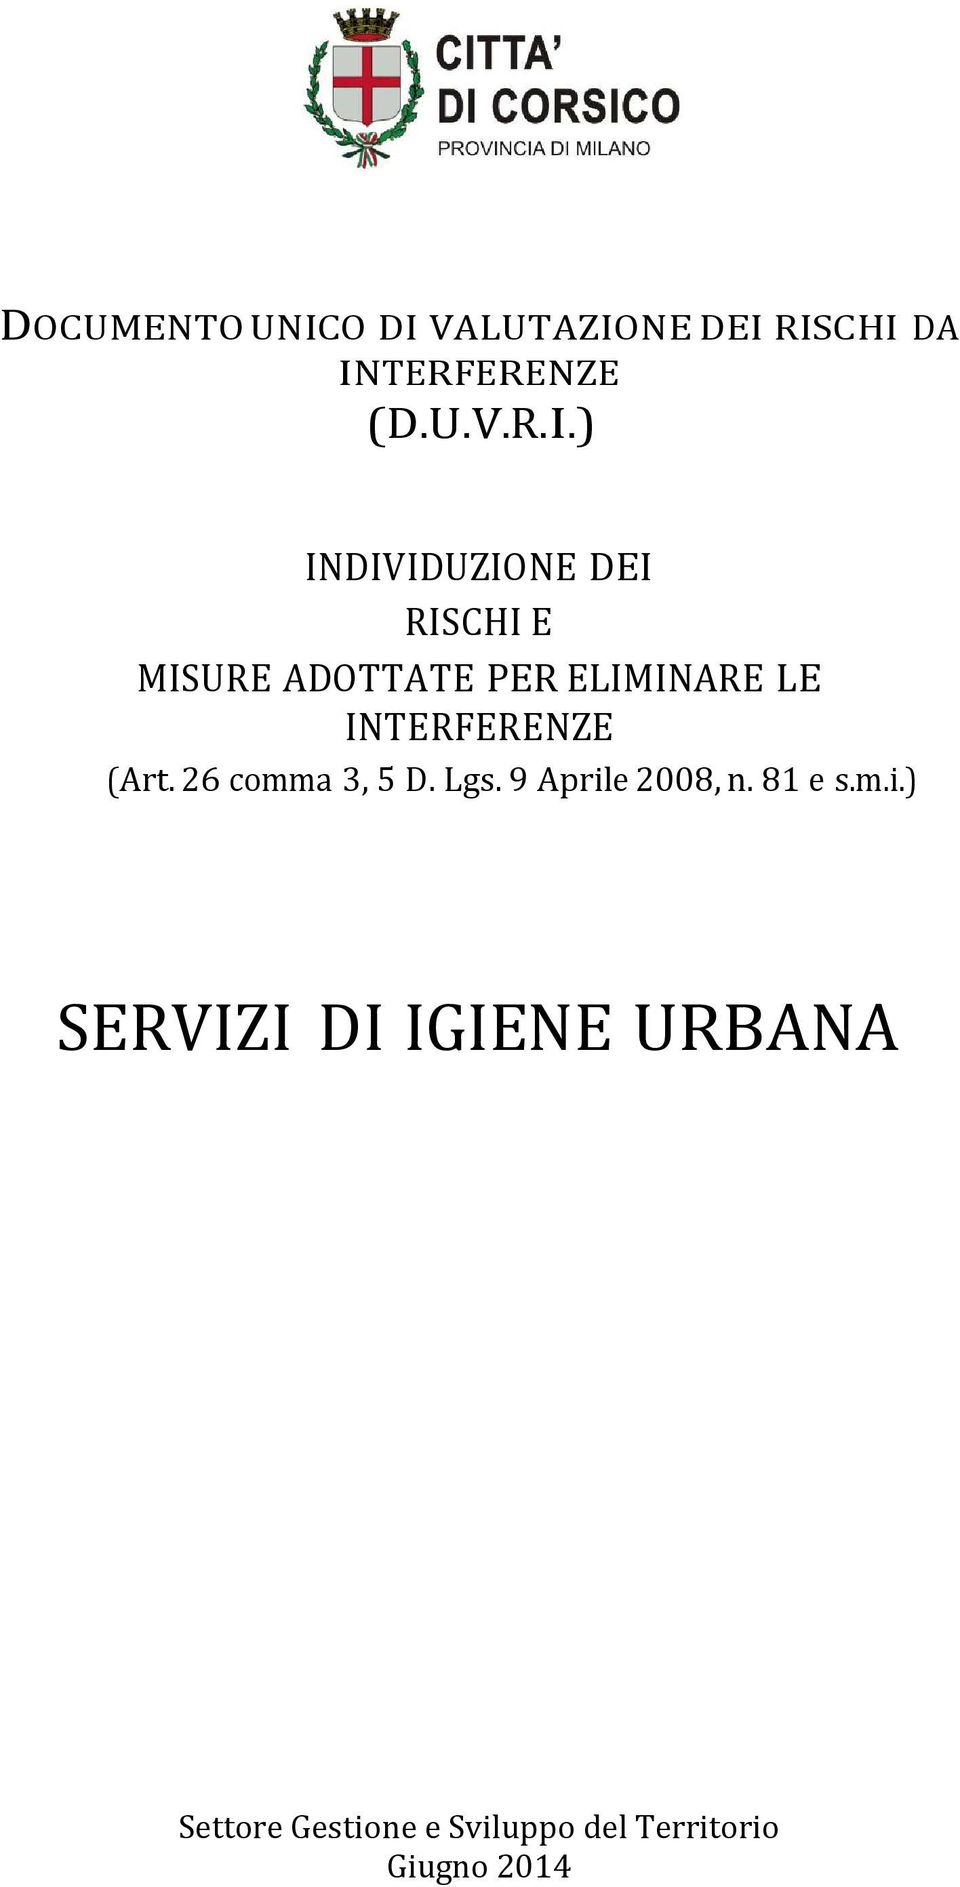 ELIMINARE LE INTERFERENZE (Art. 26 comma 3, 5 D.